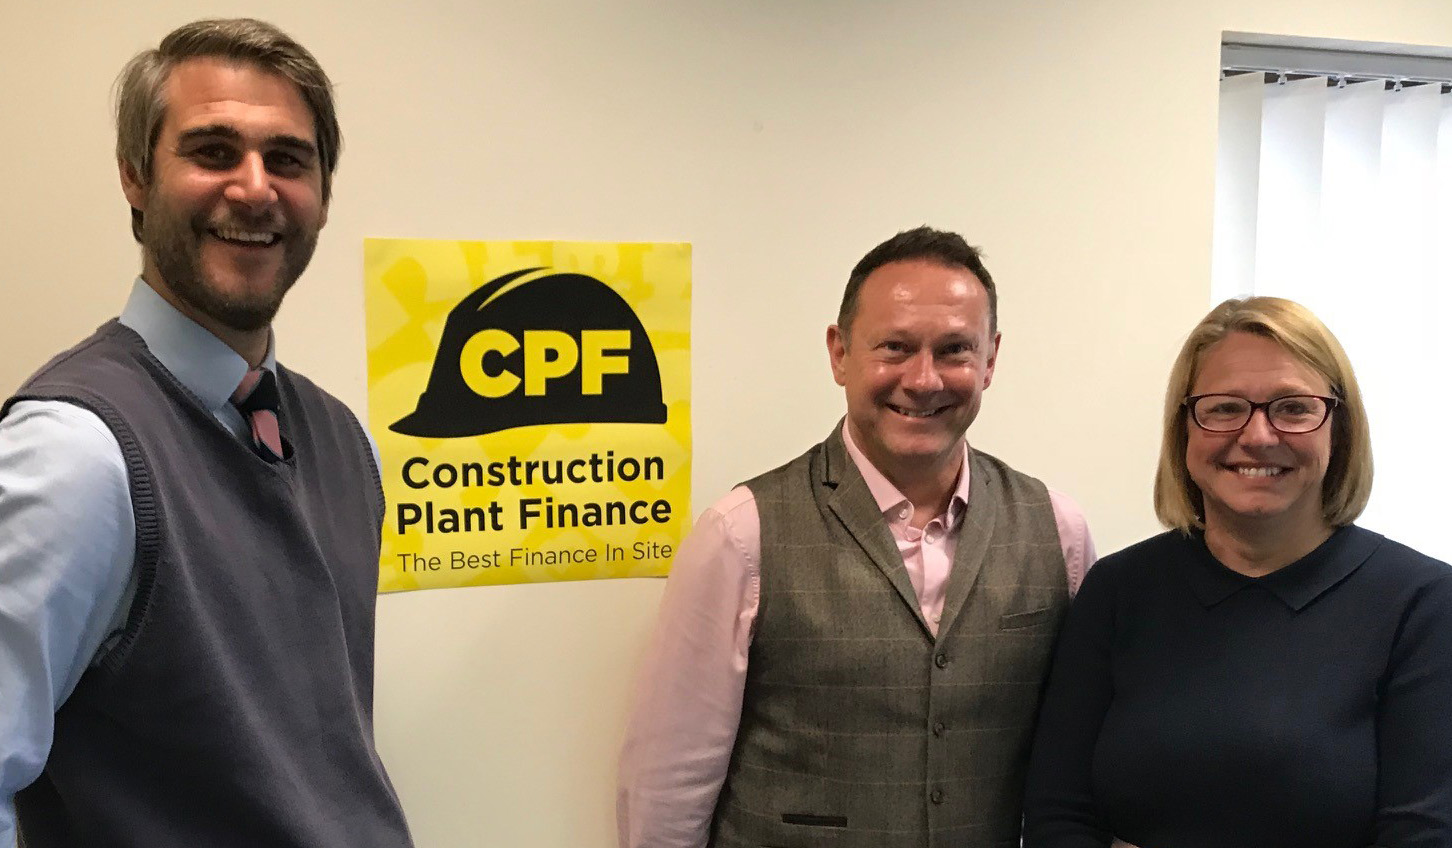 Construction Plant Finance